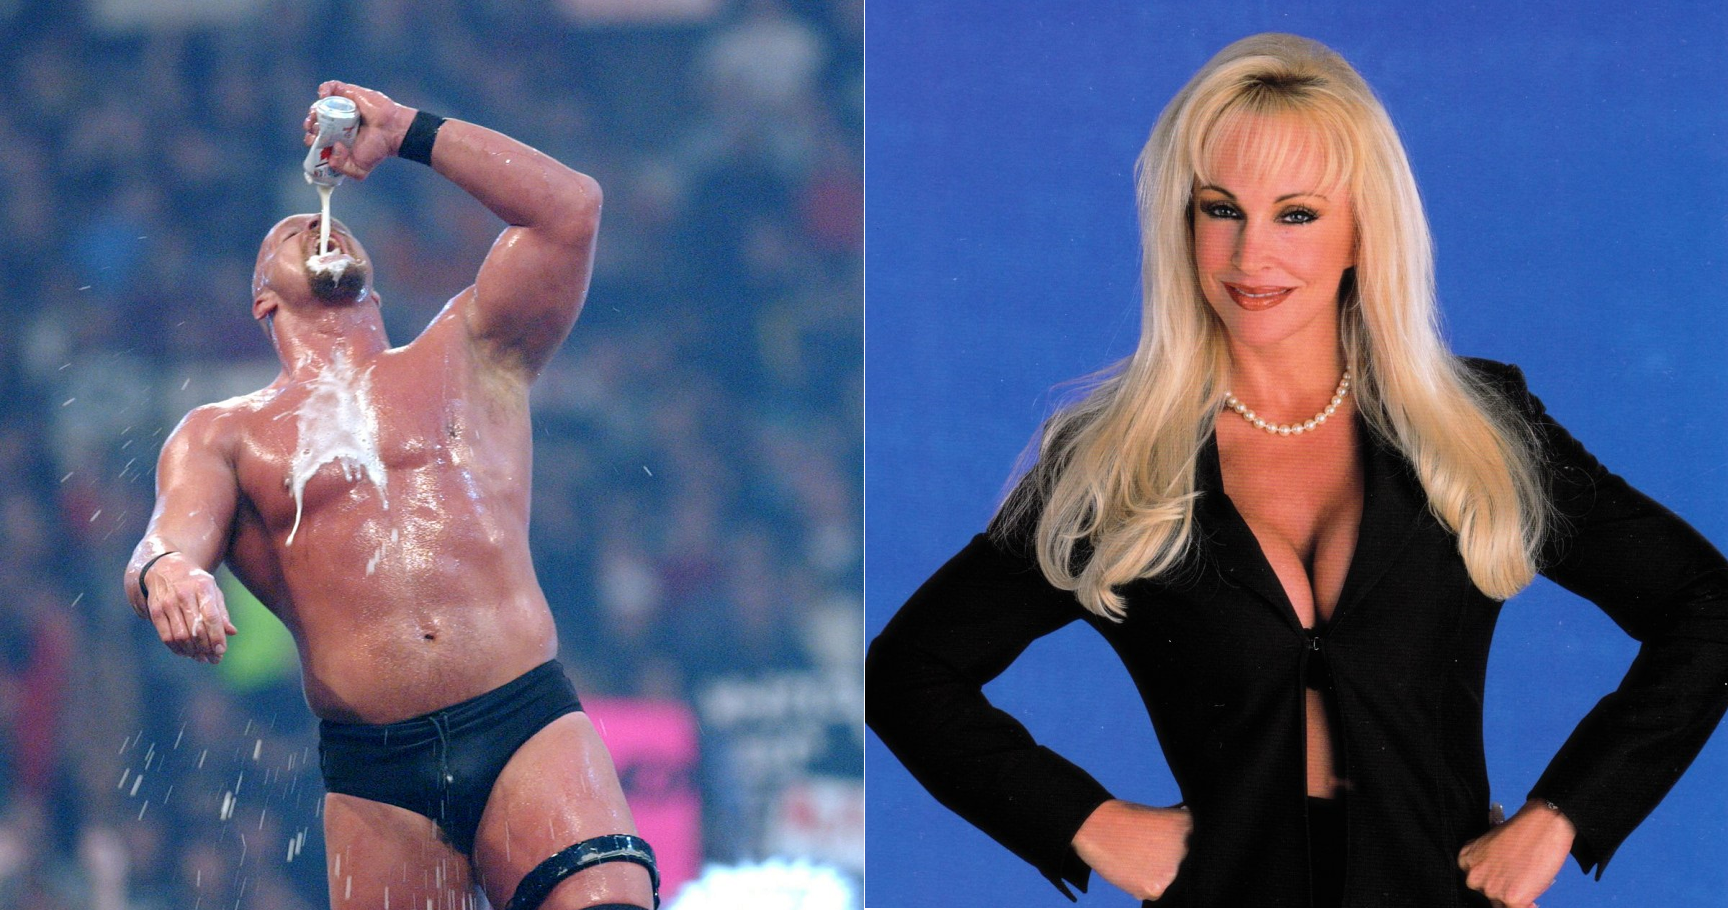 Top 15 Things WWE Ignores About Their Employees